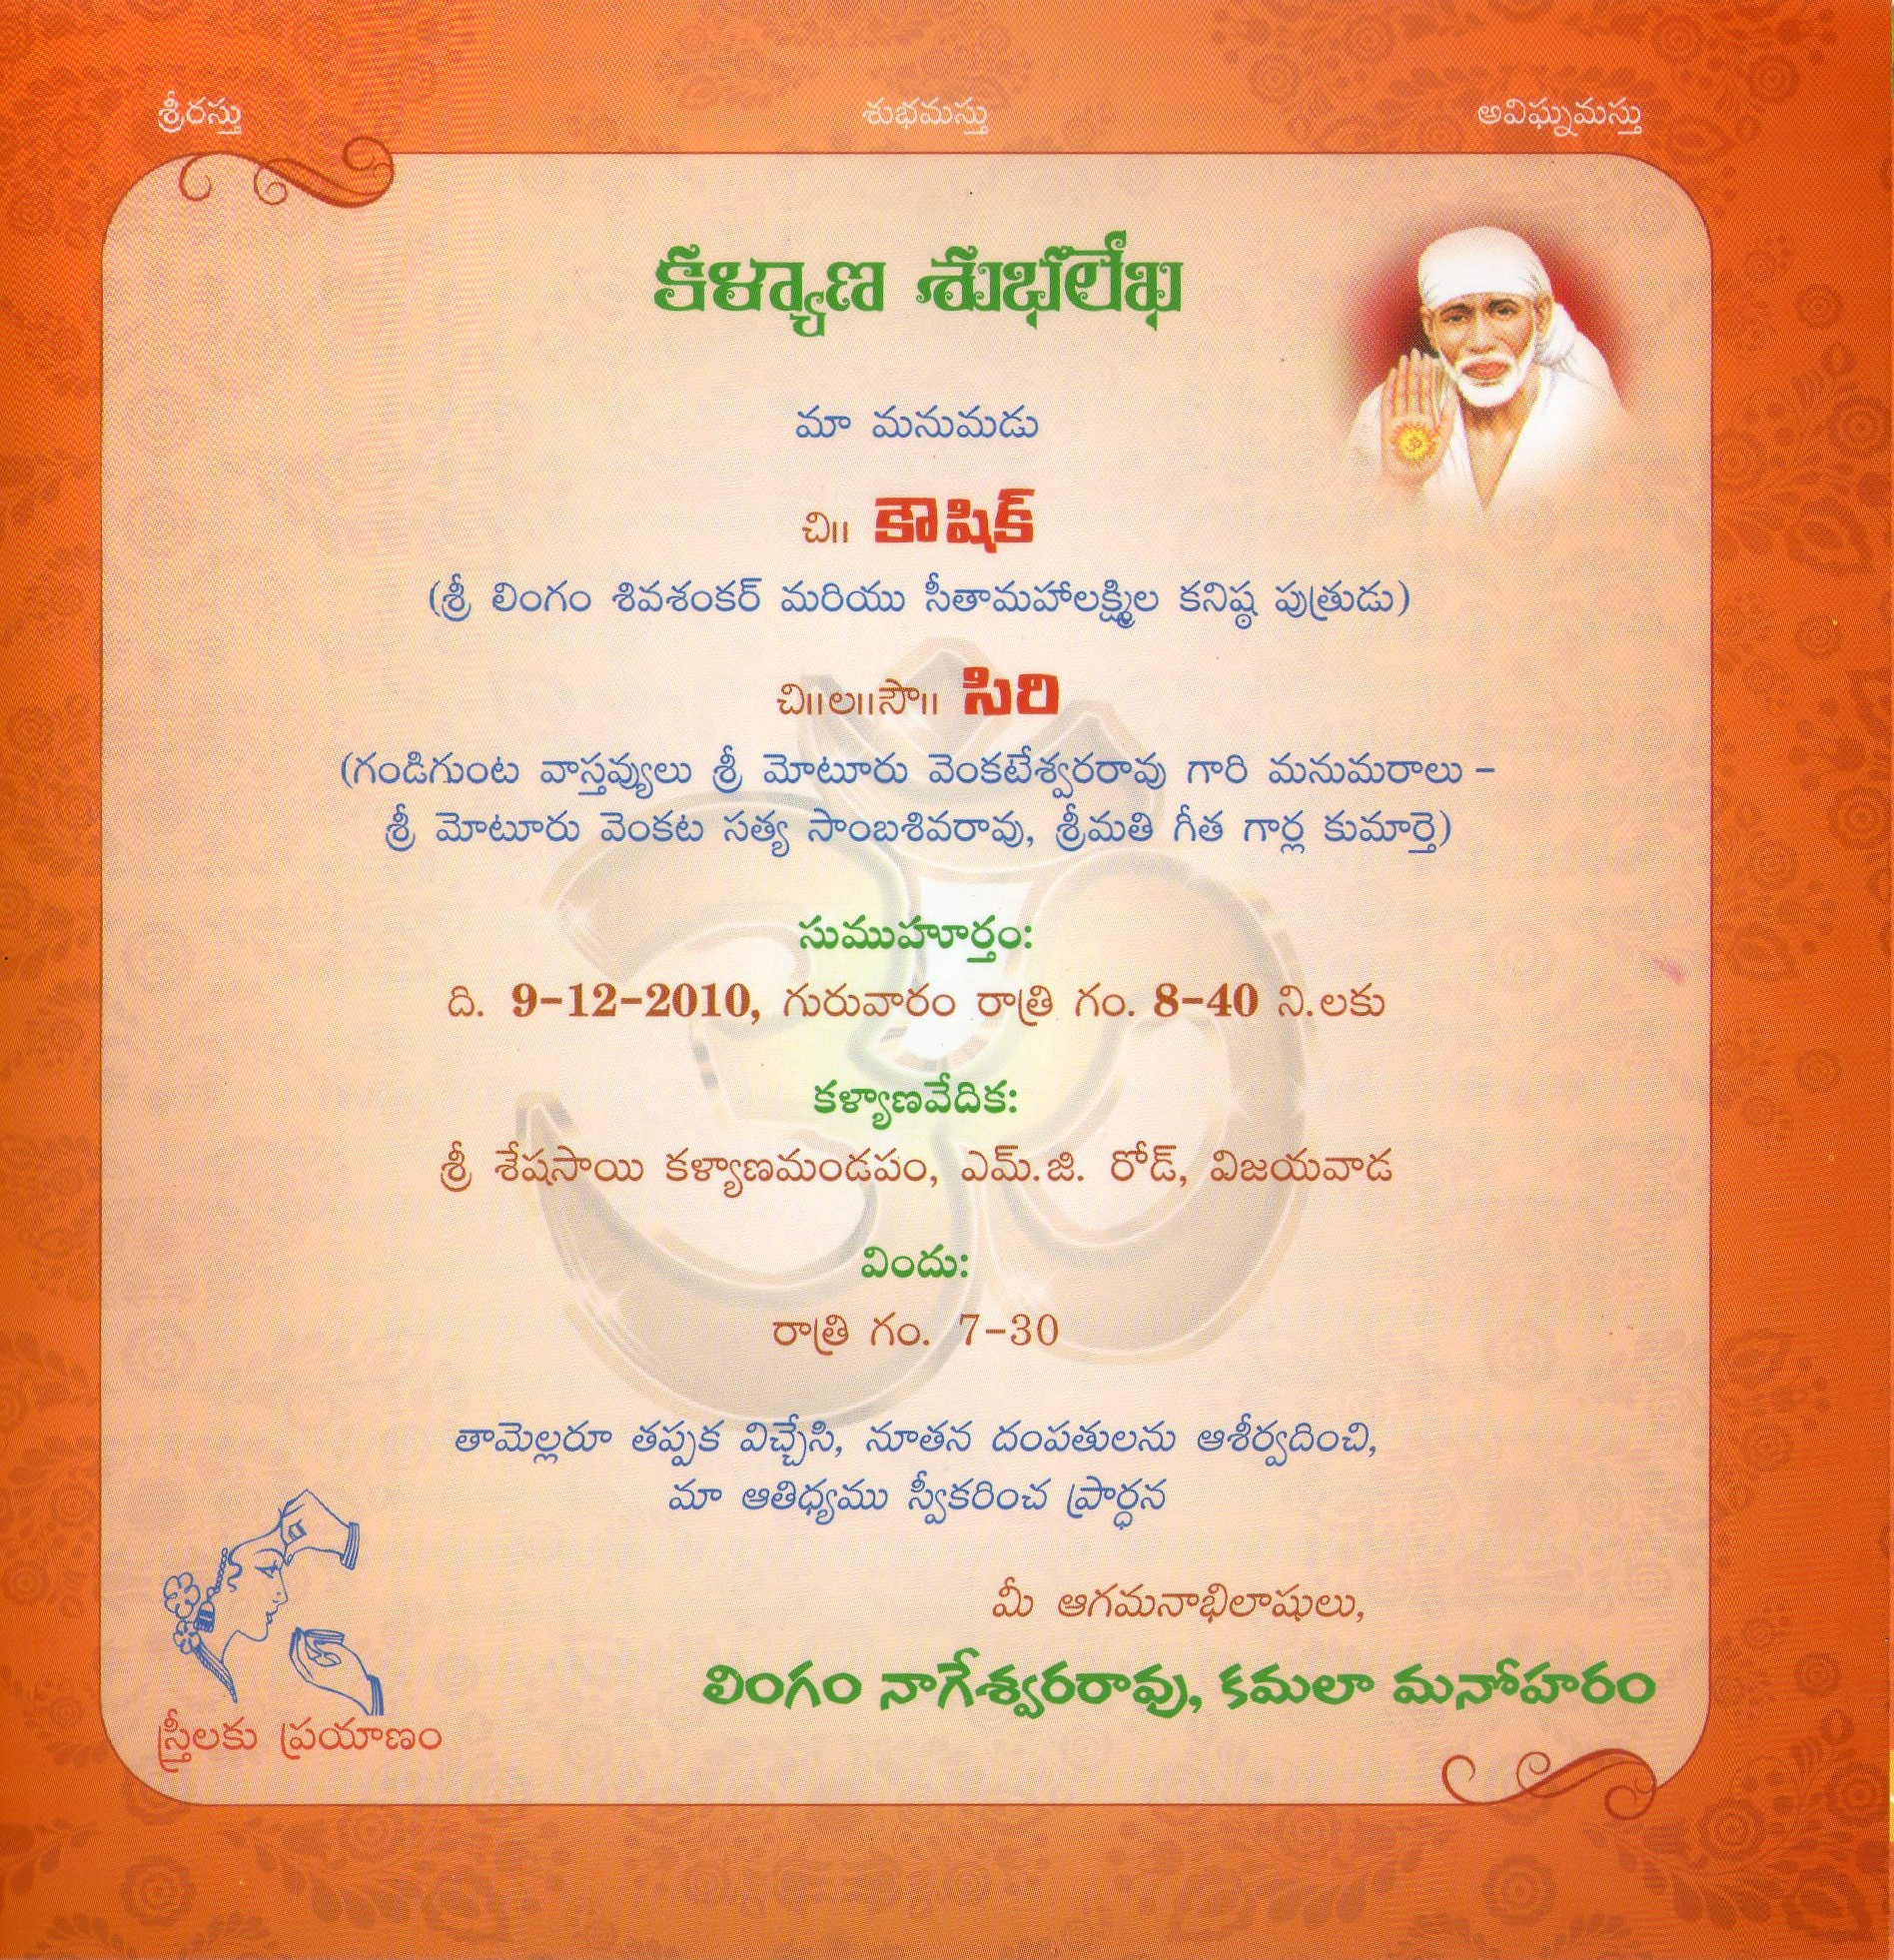 1st birthday invitation cards in telugu ; 1st-birthday-invitation-cards-in-telugu-new-invitation-card-meaning-in-telugu-gallery-invitation-sample-and-of-1st-birthday-invitation-cards-in-telugu